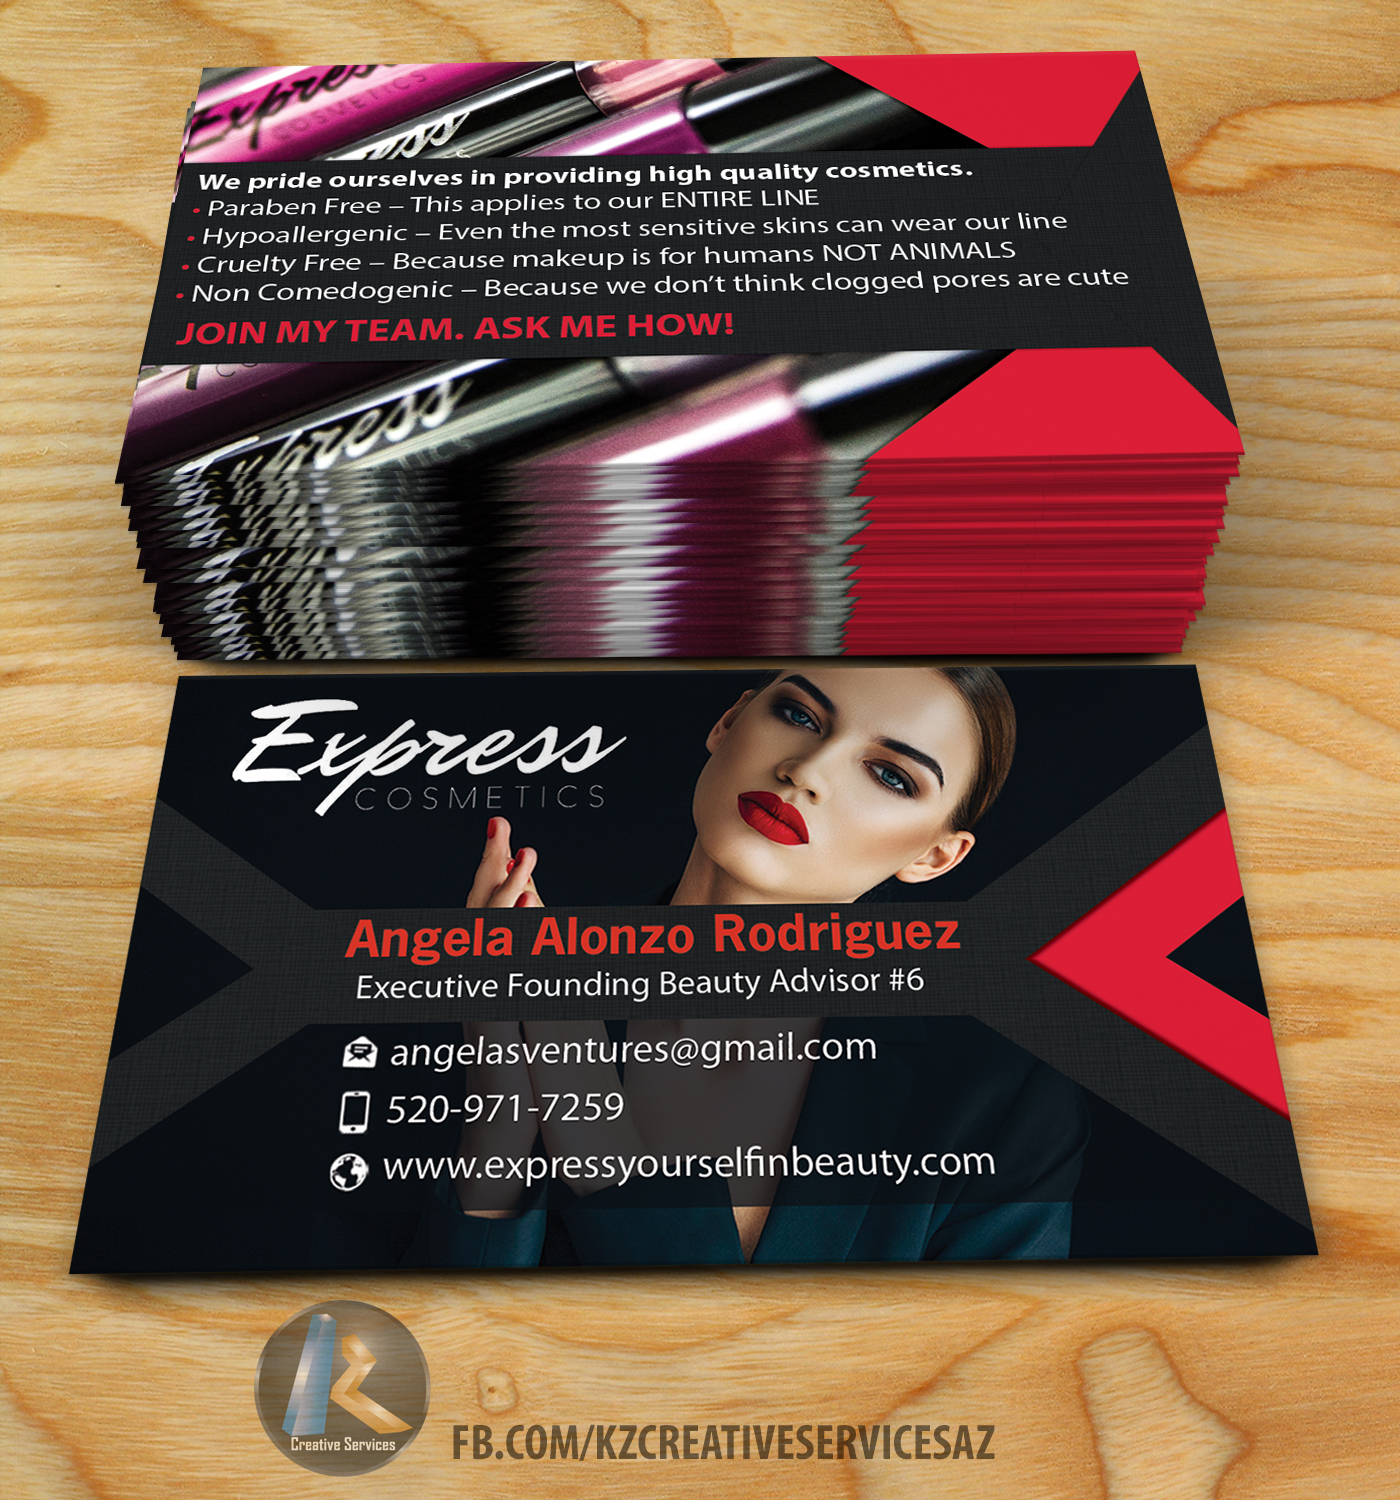 Express Cosmetics Business Cards · KZ Creative Services · Online ...